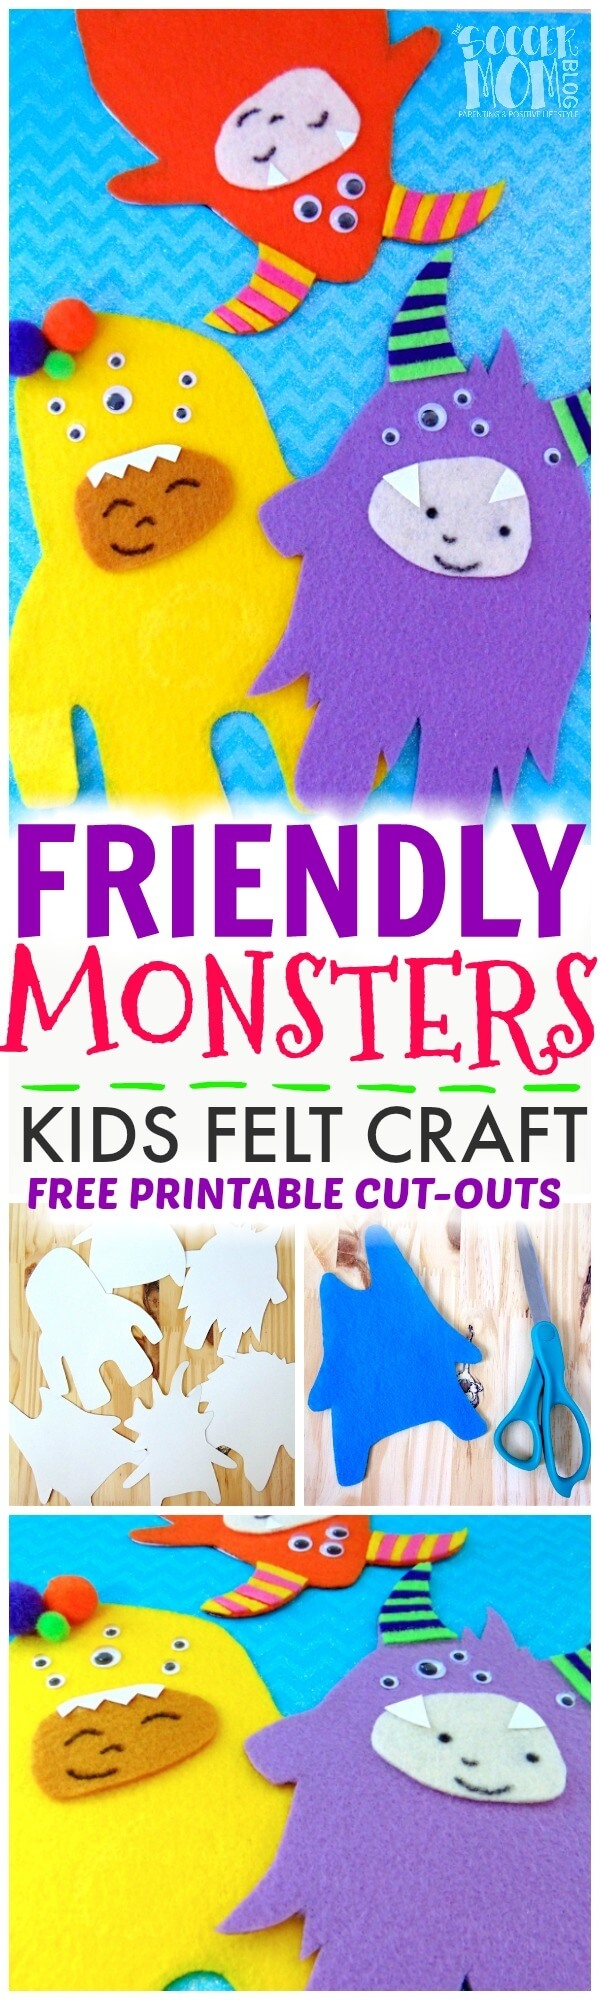 "These colorful felt craft ""friendly monsters"" put a new spin on paper dolls! So much fun for kids to make and play with over and over again!"